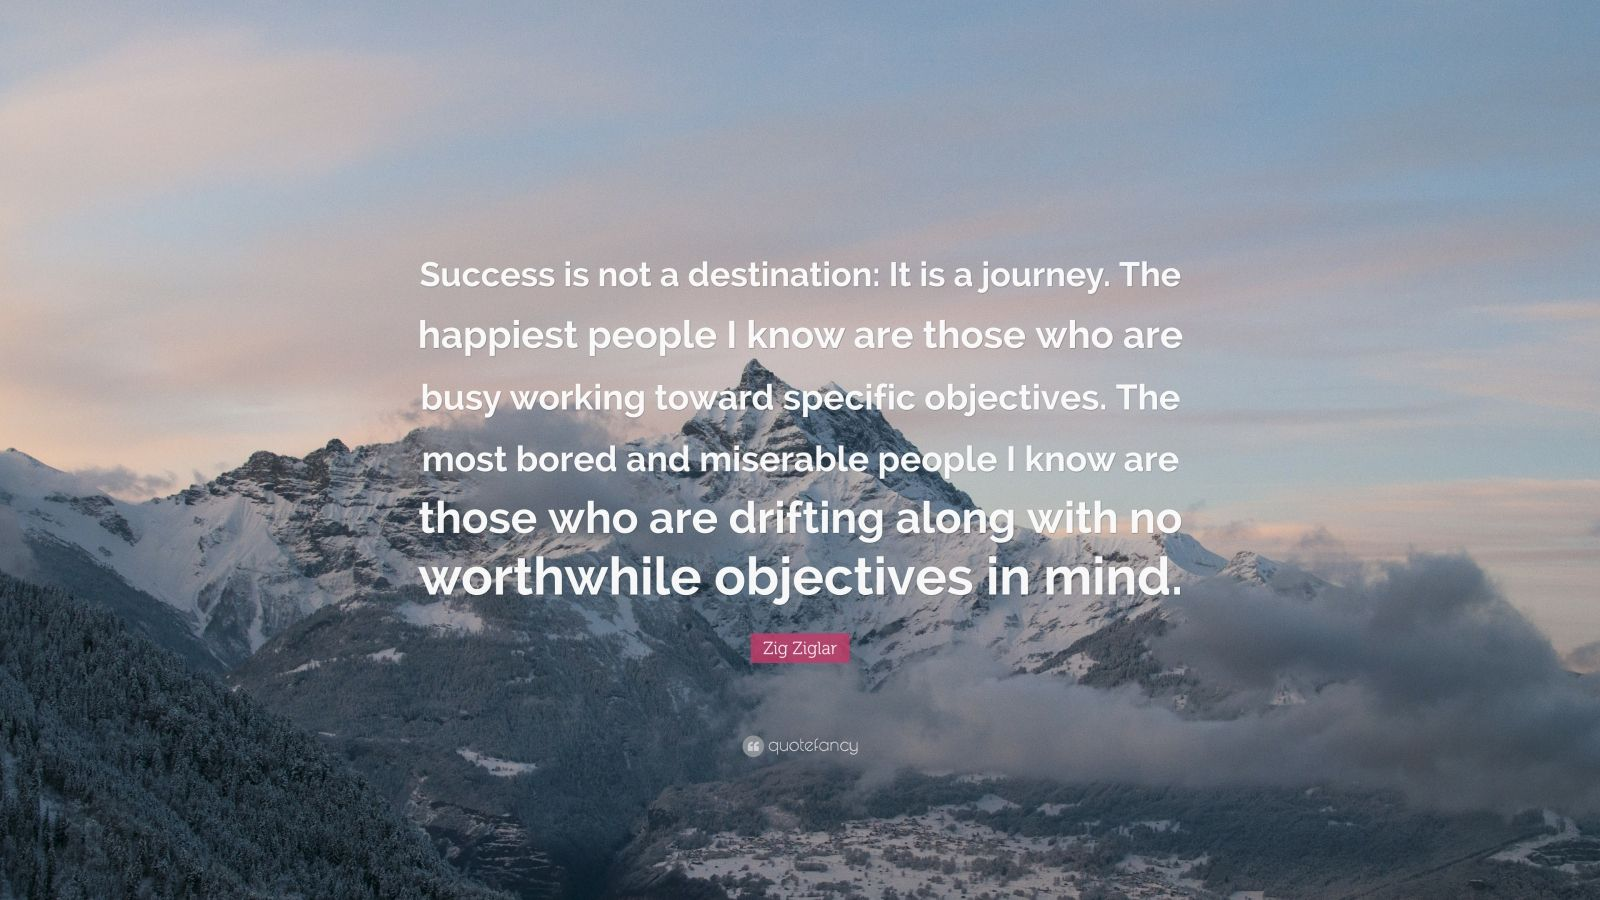 """Zig Ziglar Quote: """"Success is not a destination: It is a journey. The happiest people I know are those who are busy working toward specific objectives. The most bored and miserable people I know are those who are drifting along with no worthwhile objectives in mind."""""""